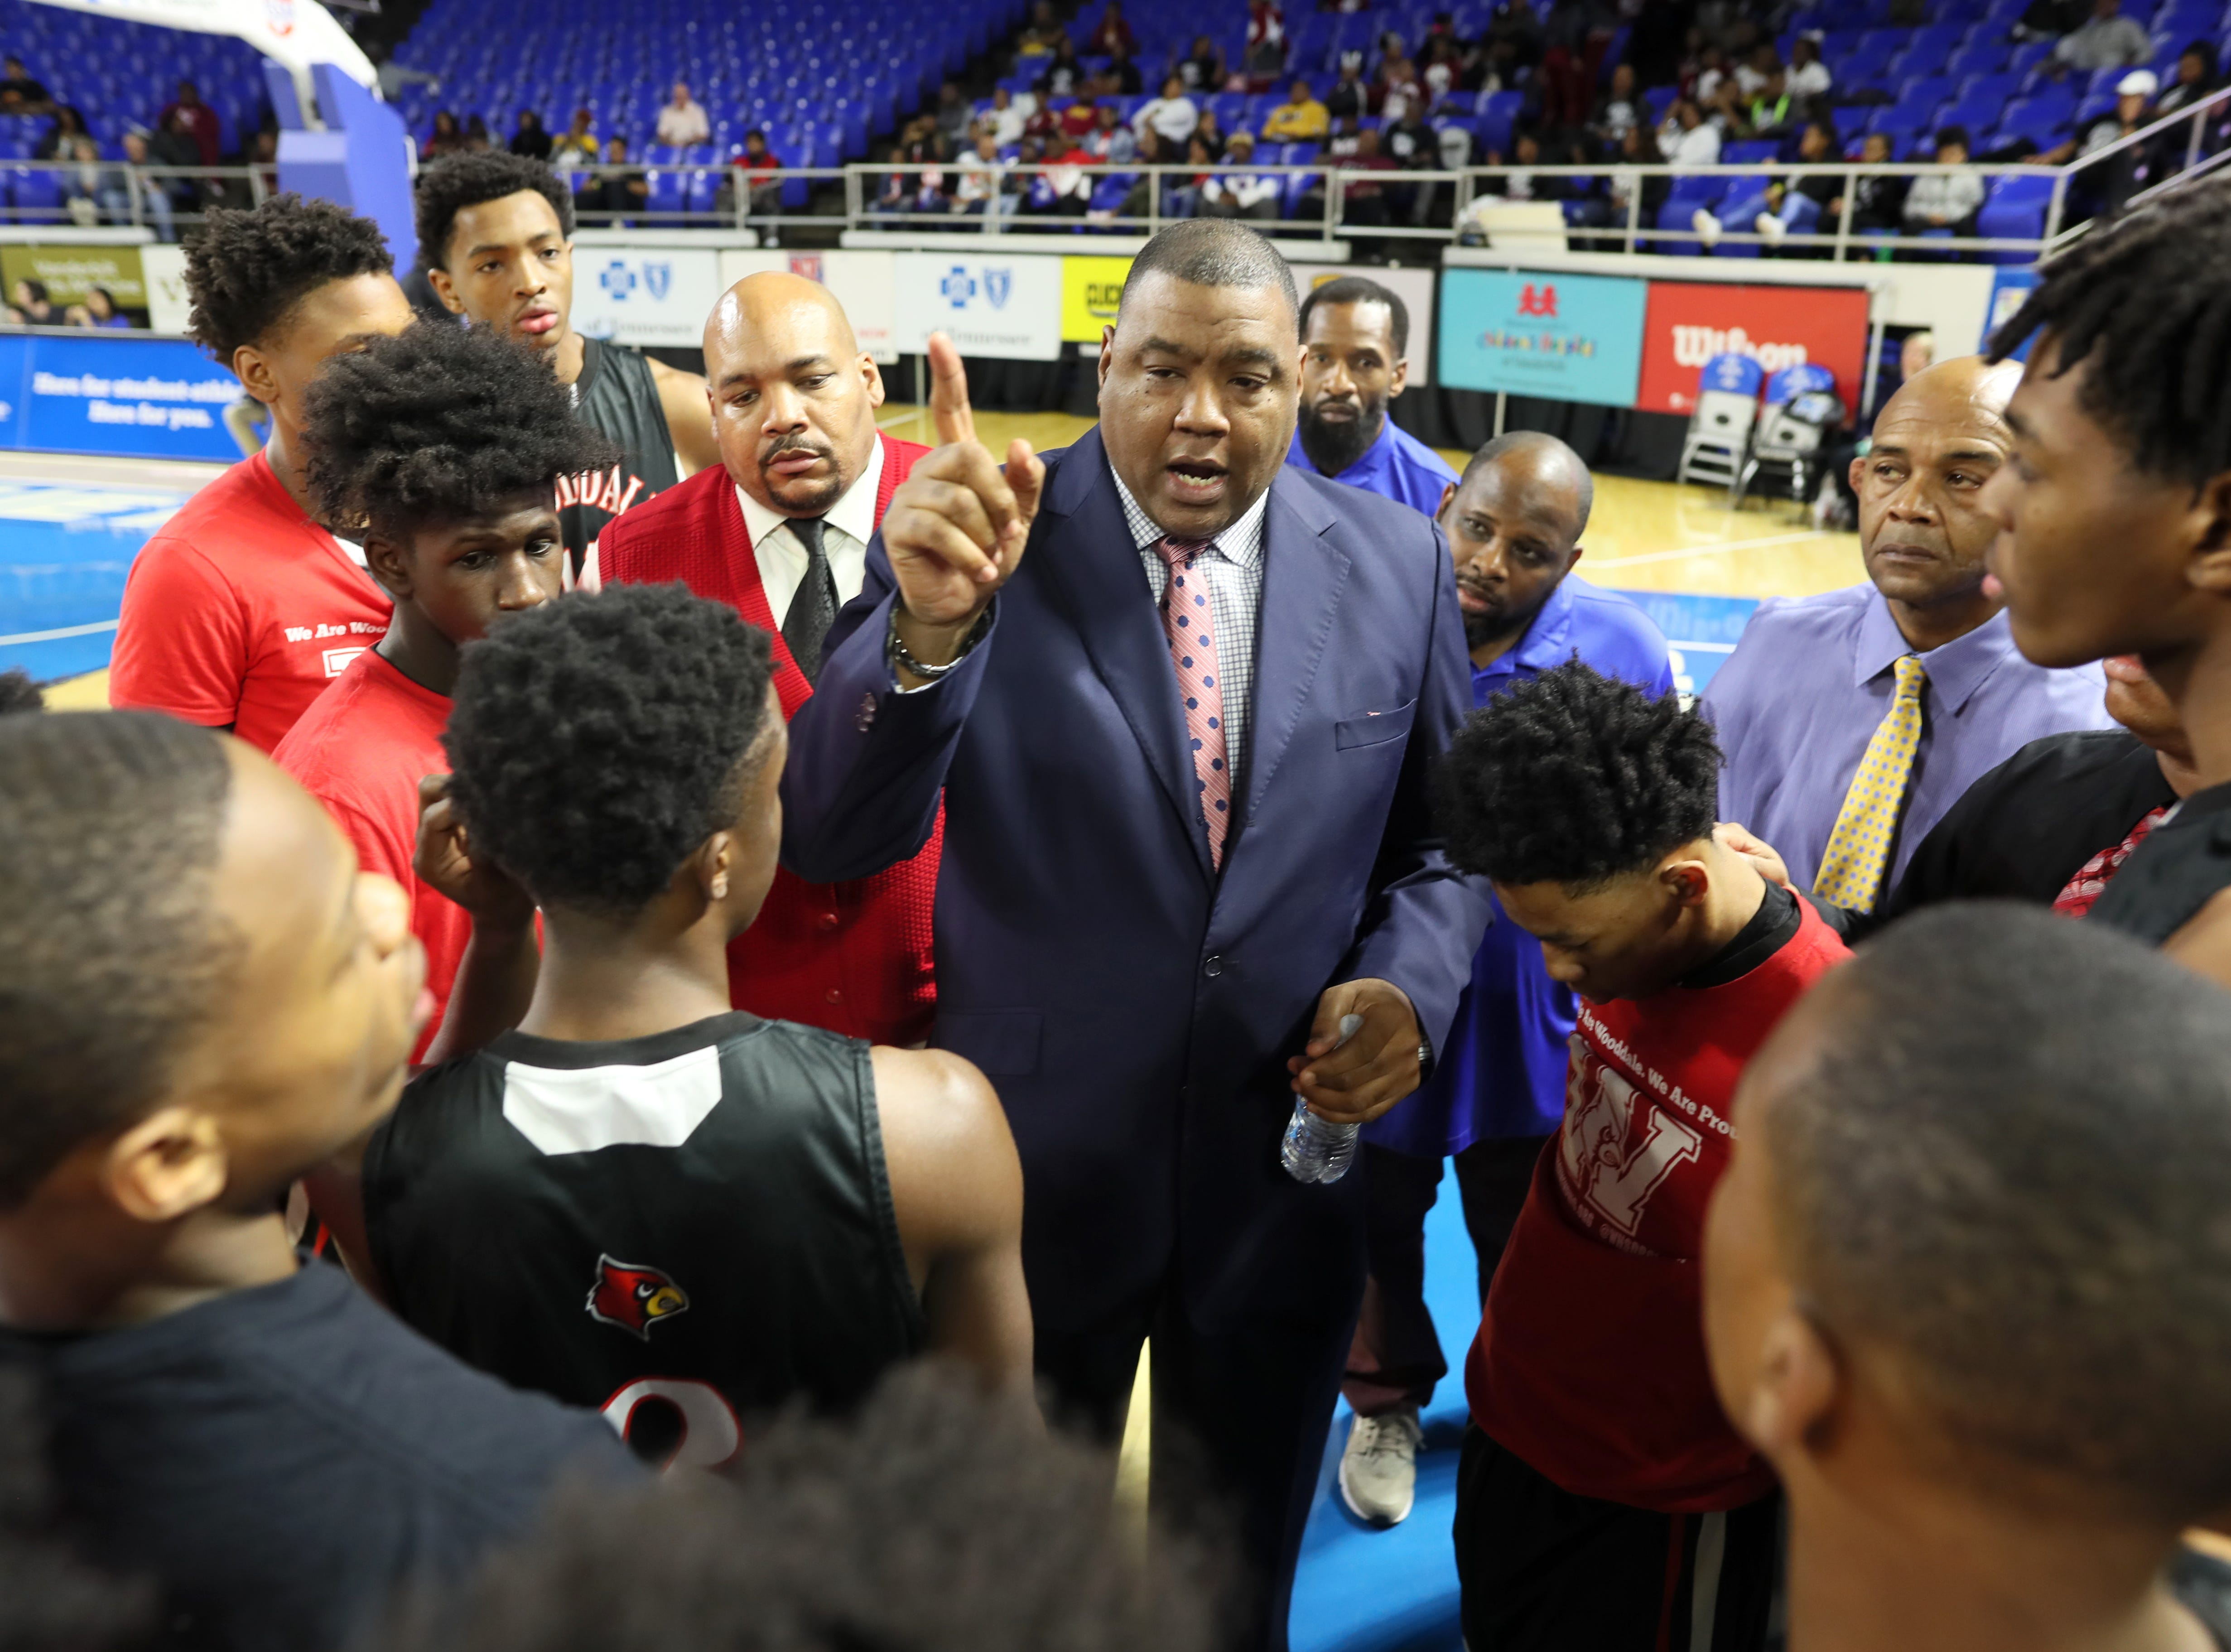 Wooddale Head Coach Keelon Lawson talks to his team before they take on Fulton during the Class AA boys basketball state championship game at the Murphy Center in Murfreesboro, Tenn. on Saturday, March 16, 2019.